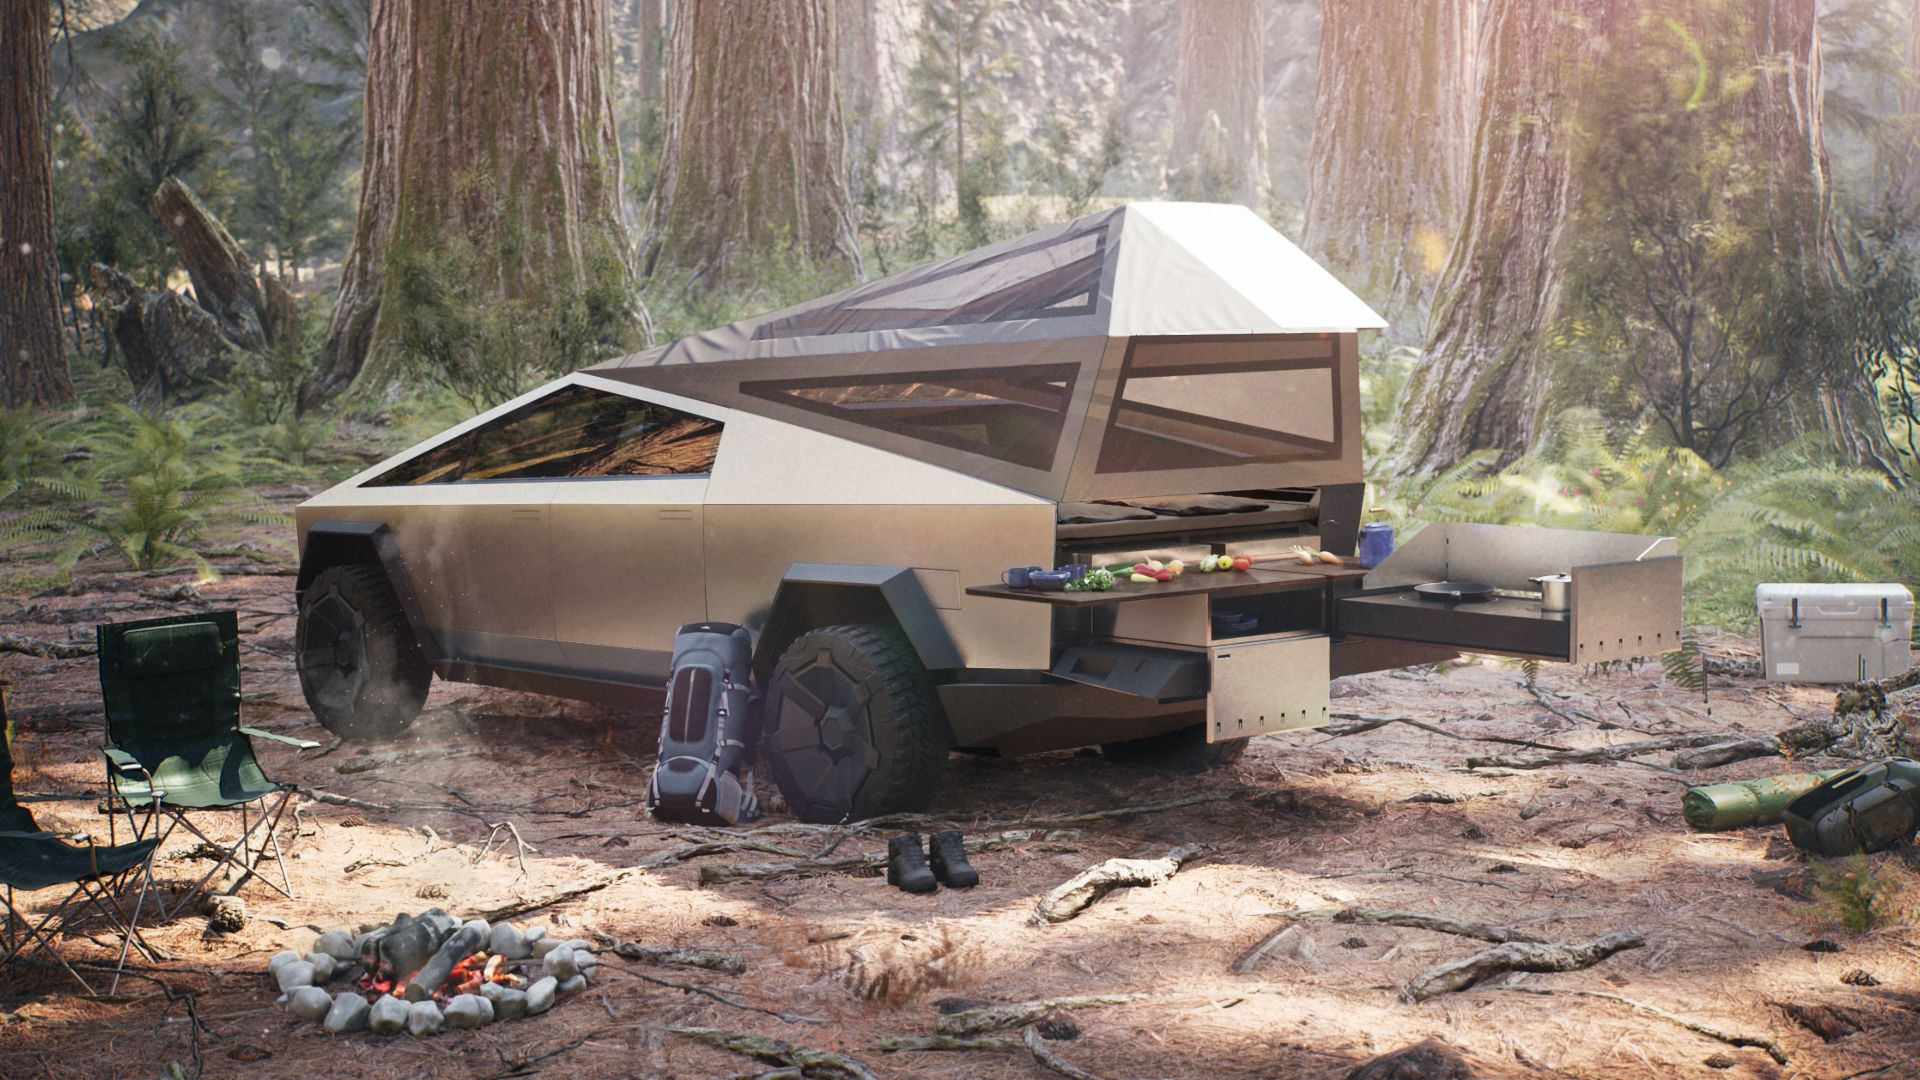 Tesla's camping attachment for the Cybertruck.